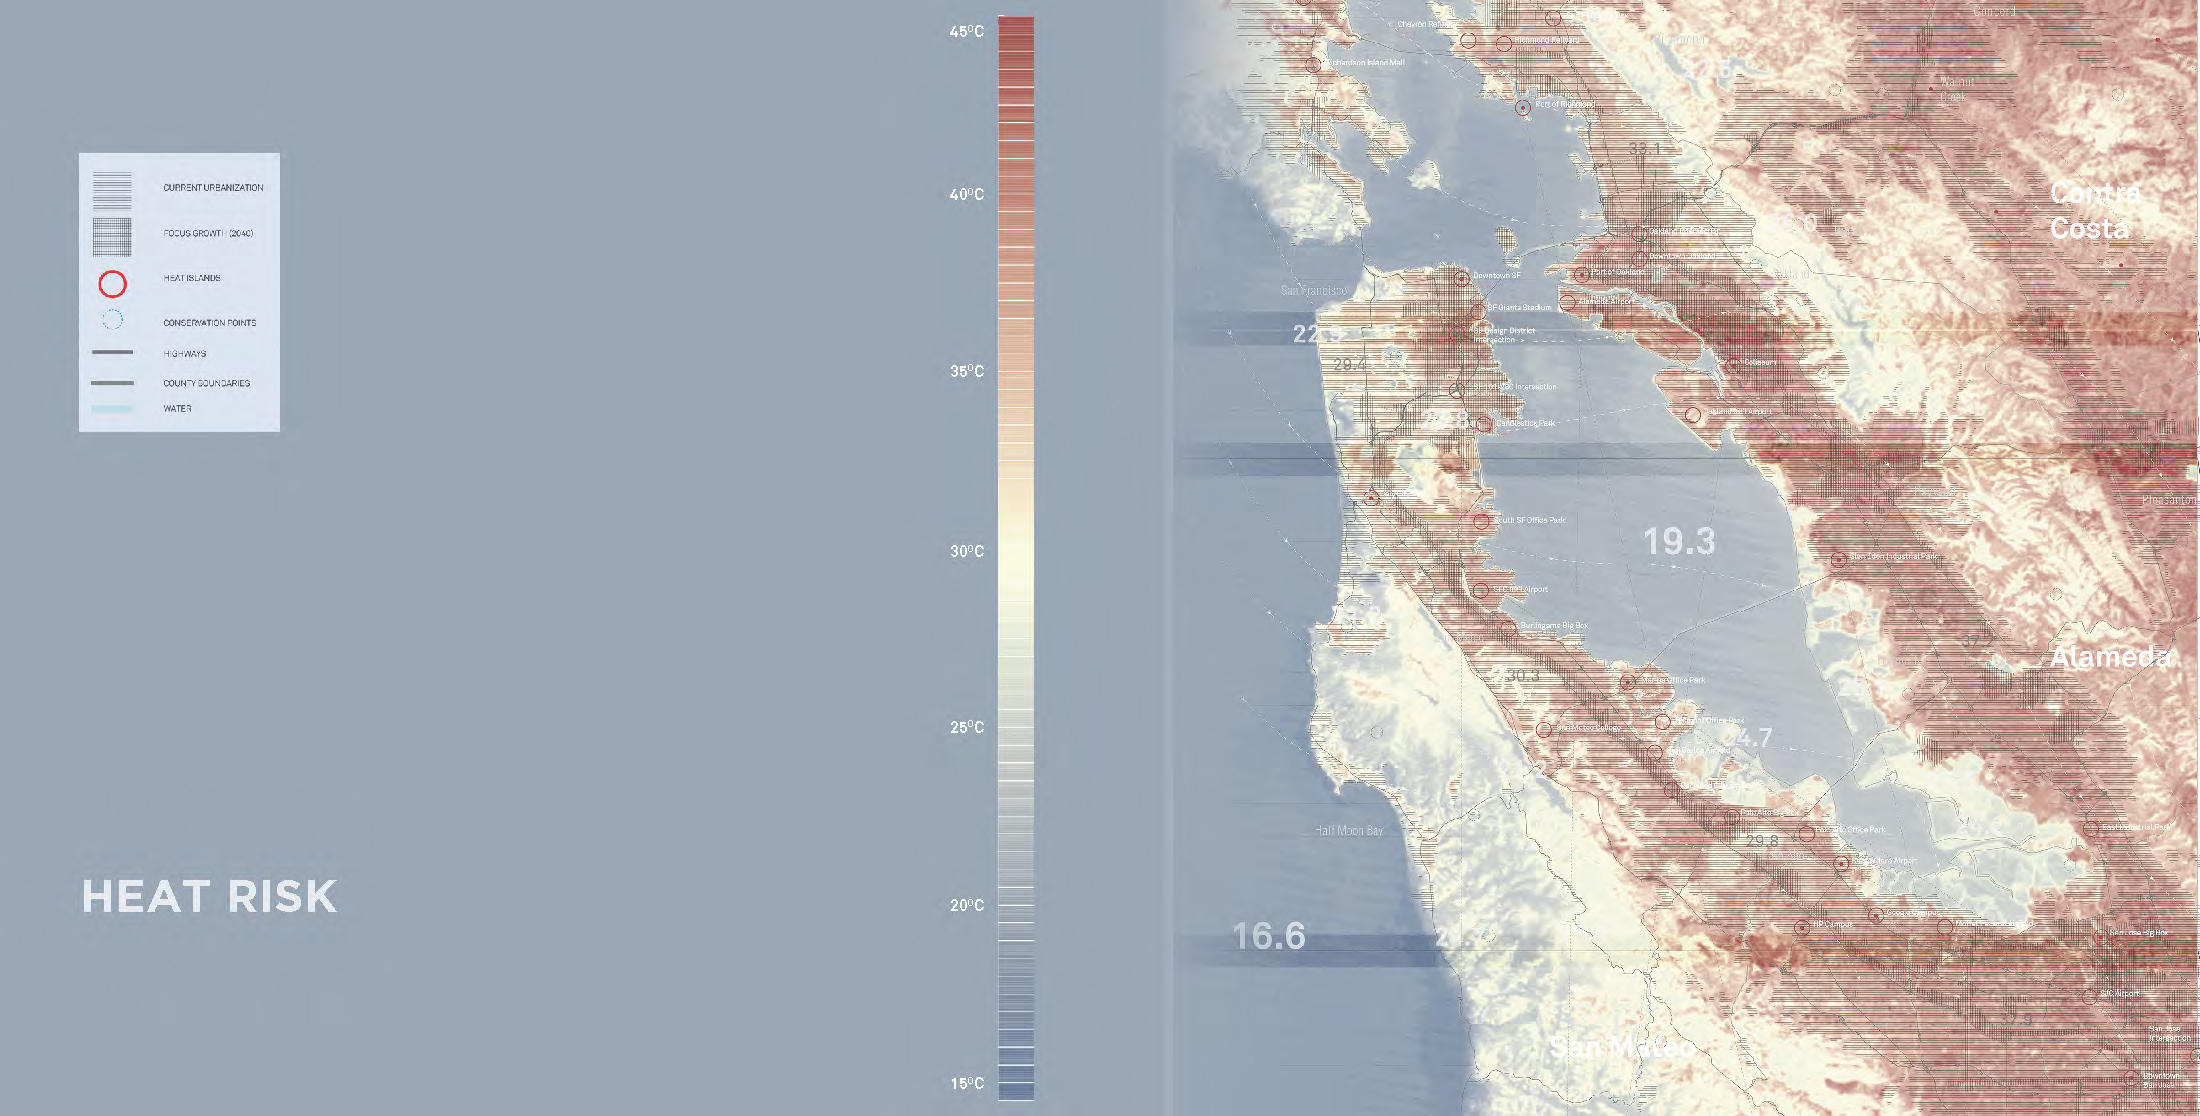 Urban heat island risk mapping of bay area - Chris Mackey, Barry Beagen